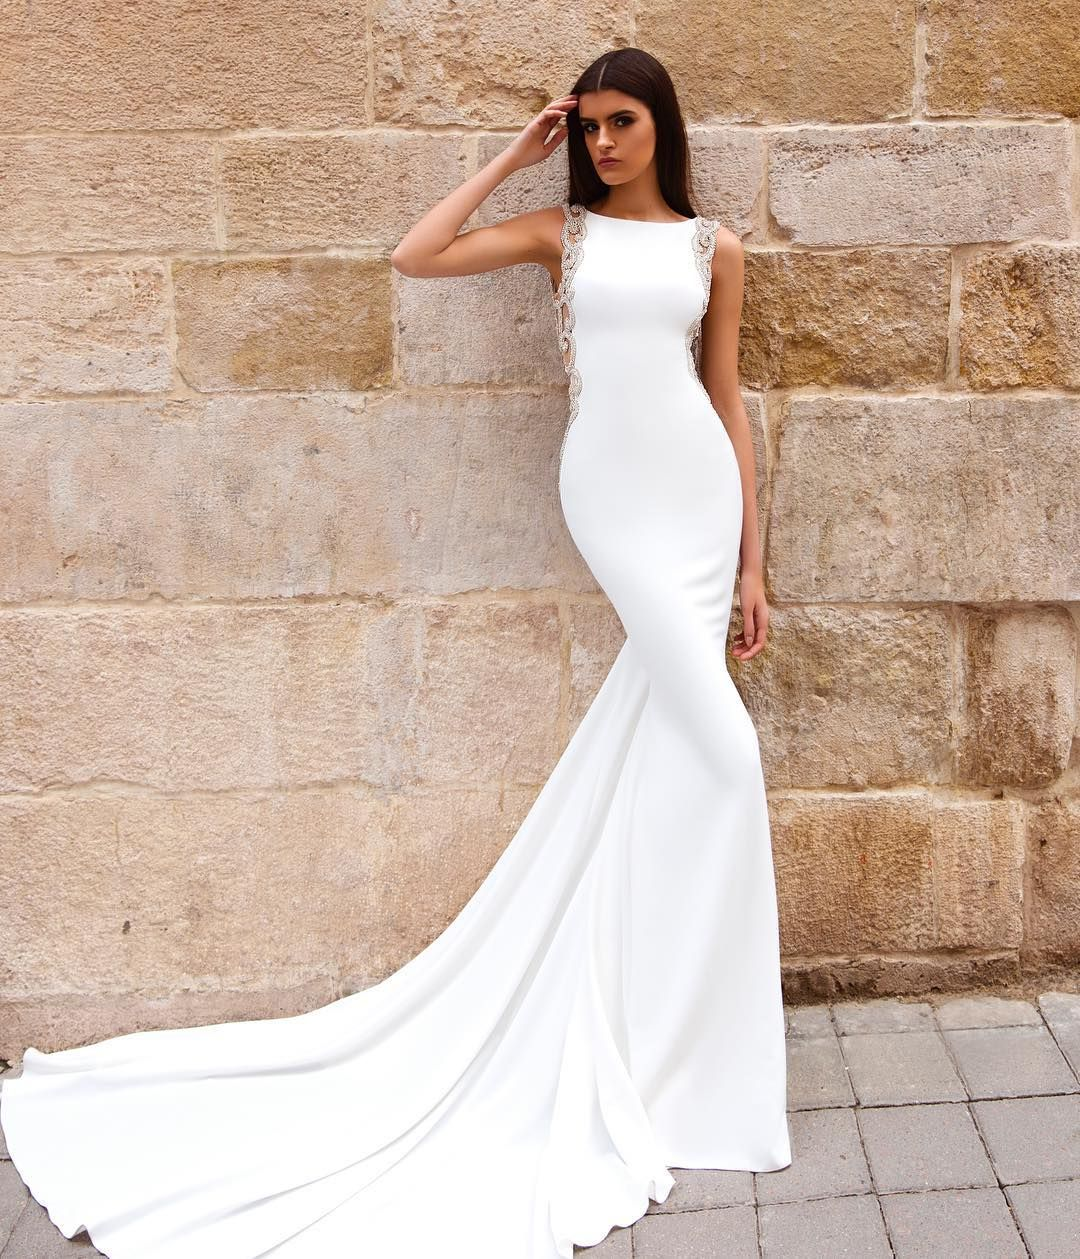 Form Fitting Wedding Gowns: Business Inquiries Lovinghautecouture@gmail.com Facebook